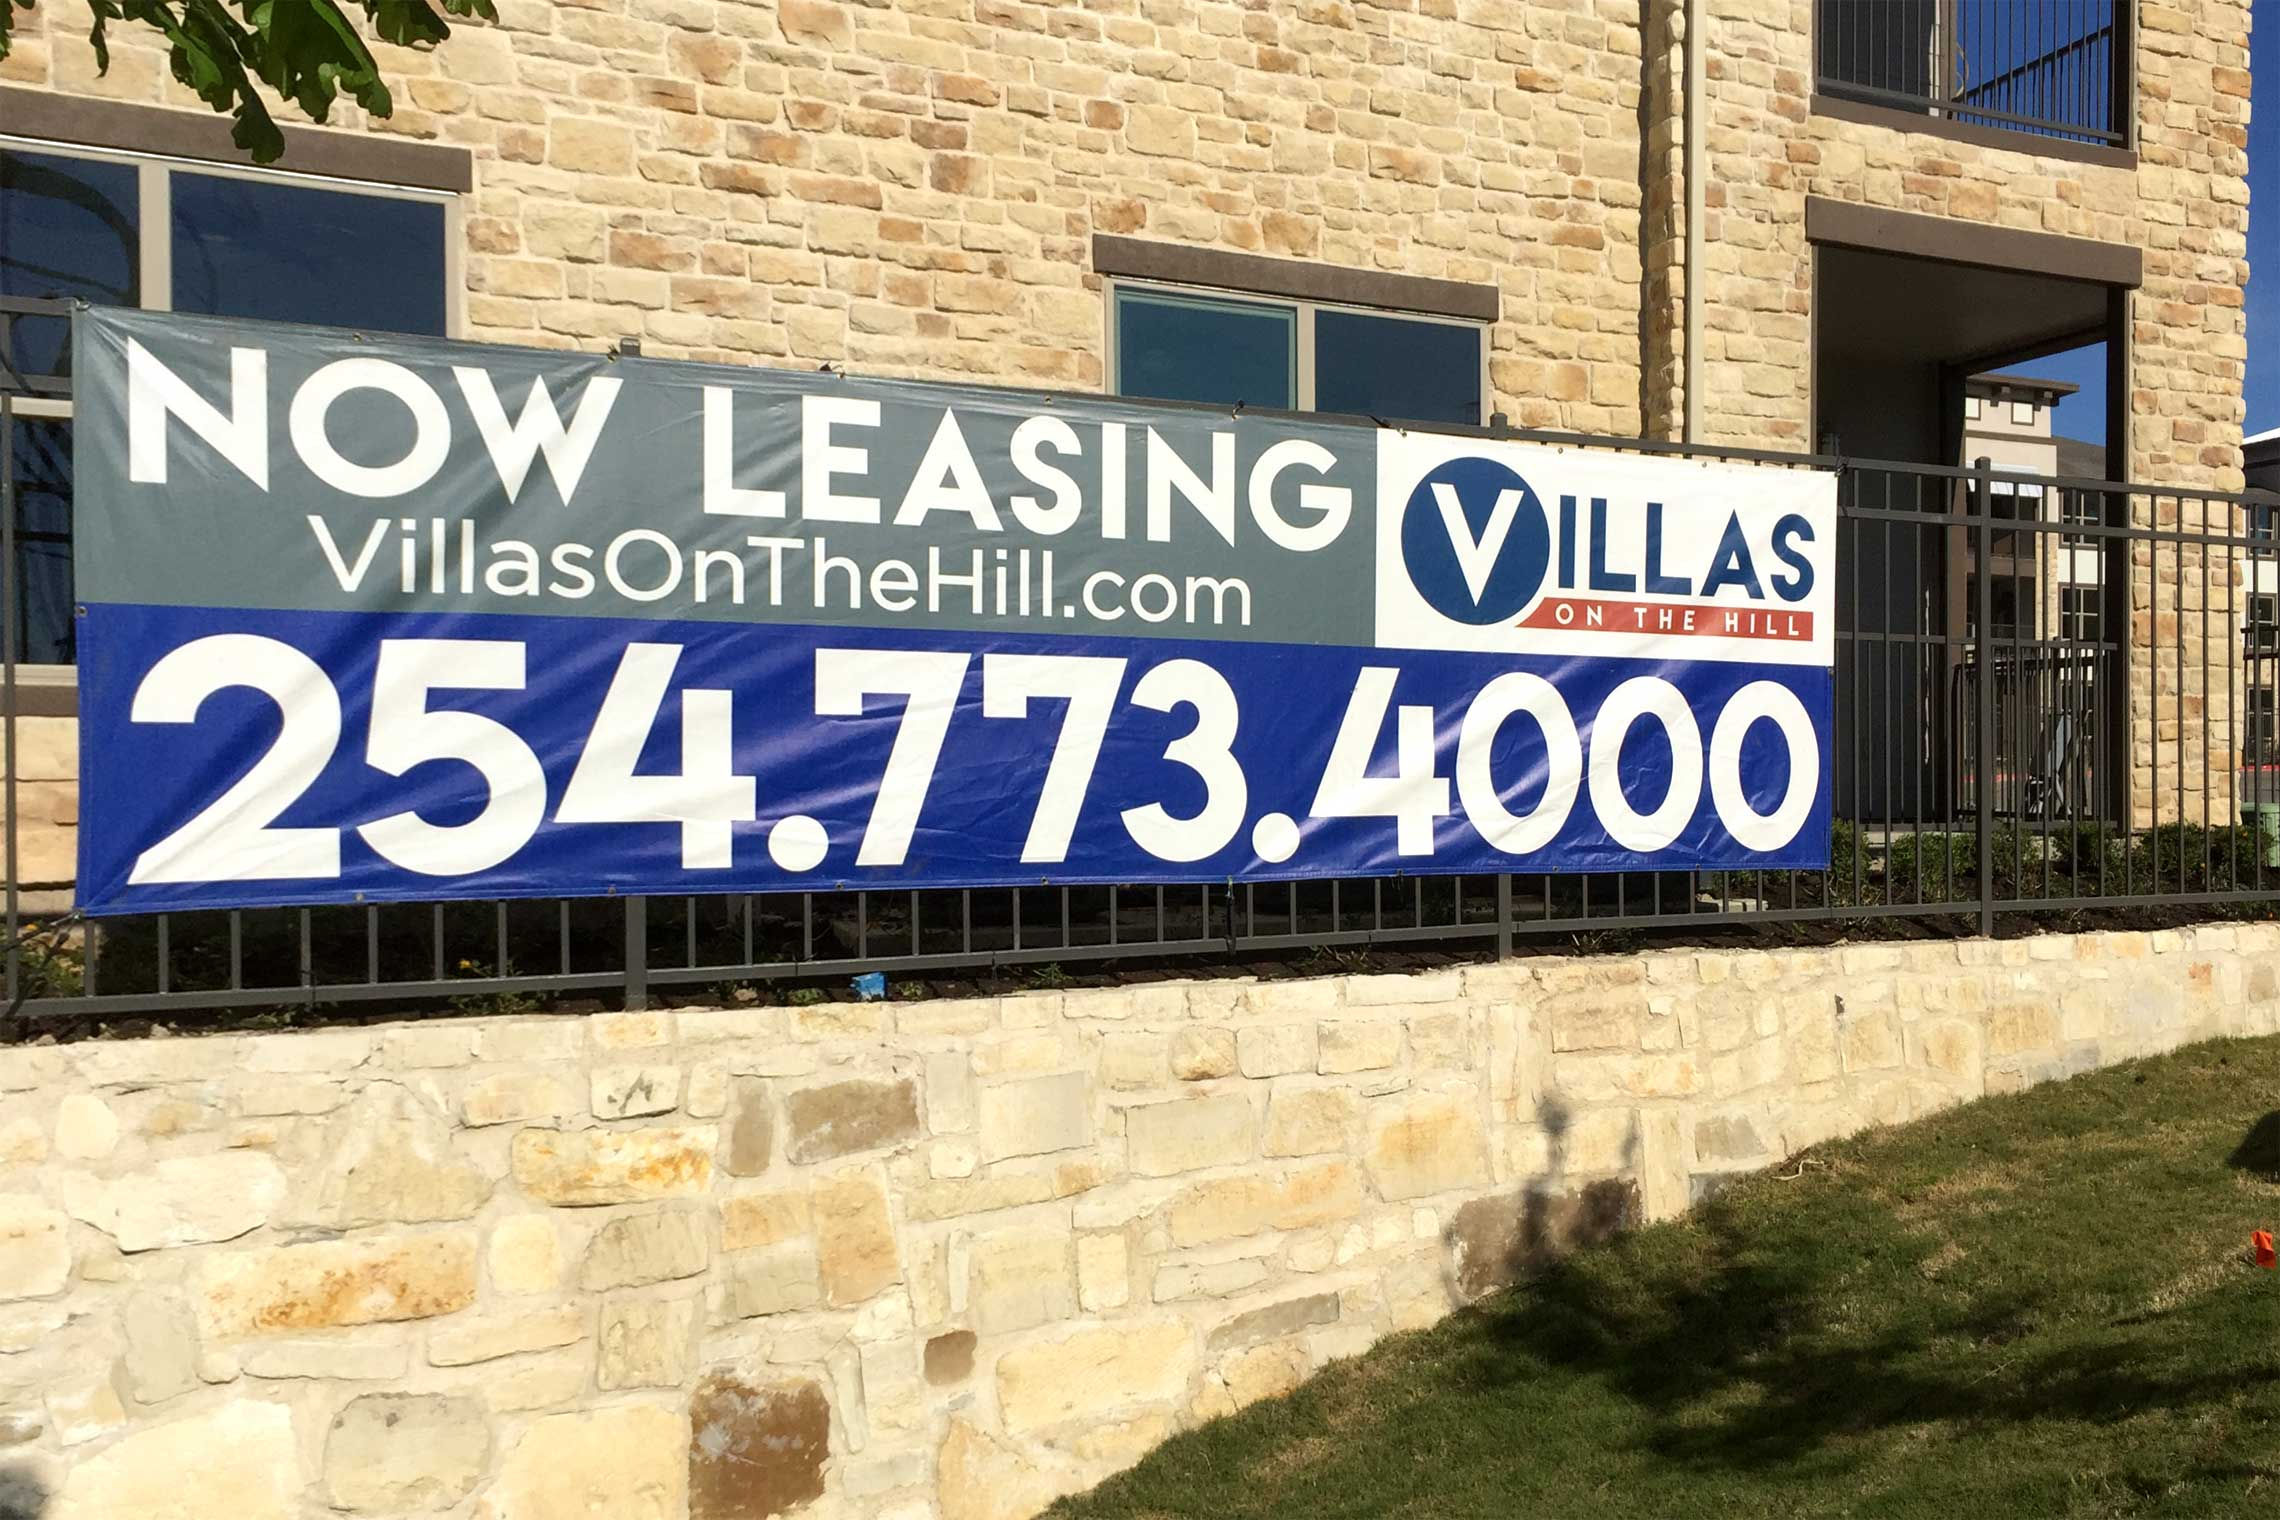 Villas on the Hill Apartments - Temporary Marketing Banner on Fence